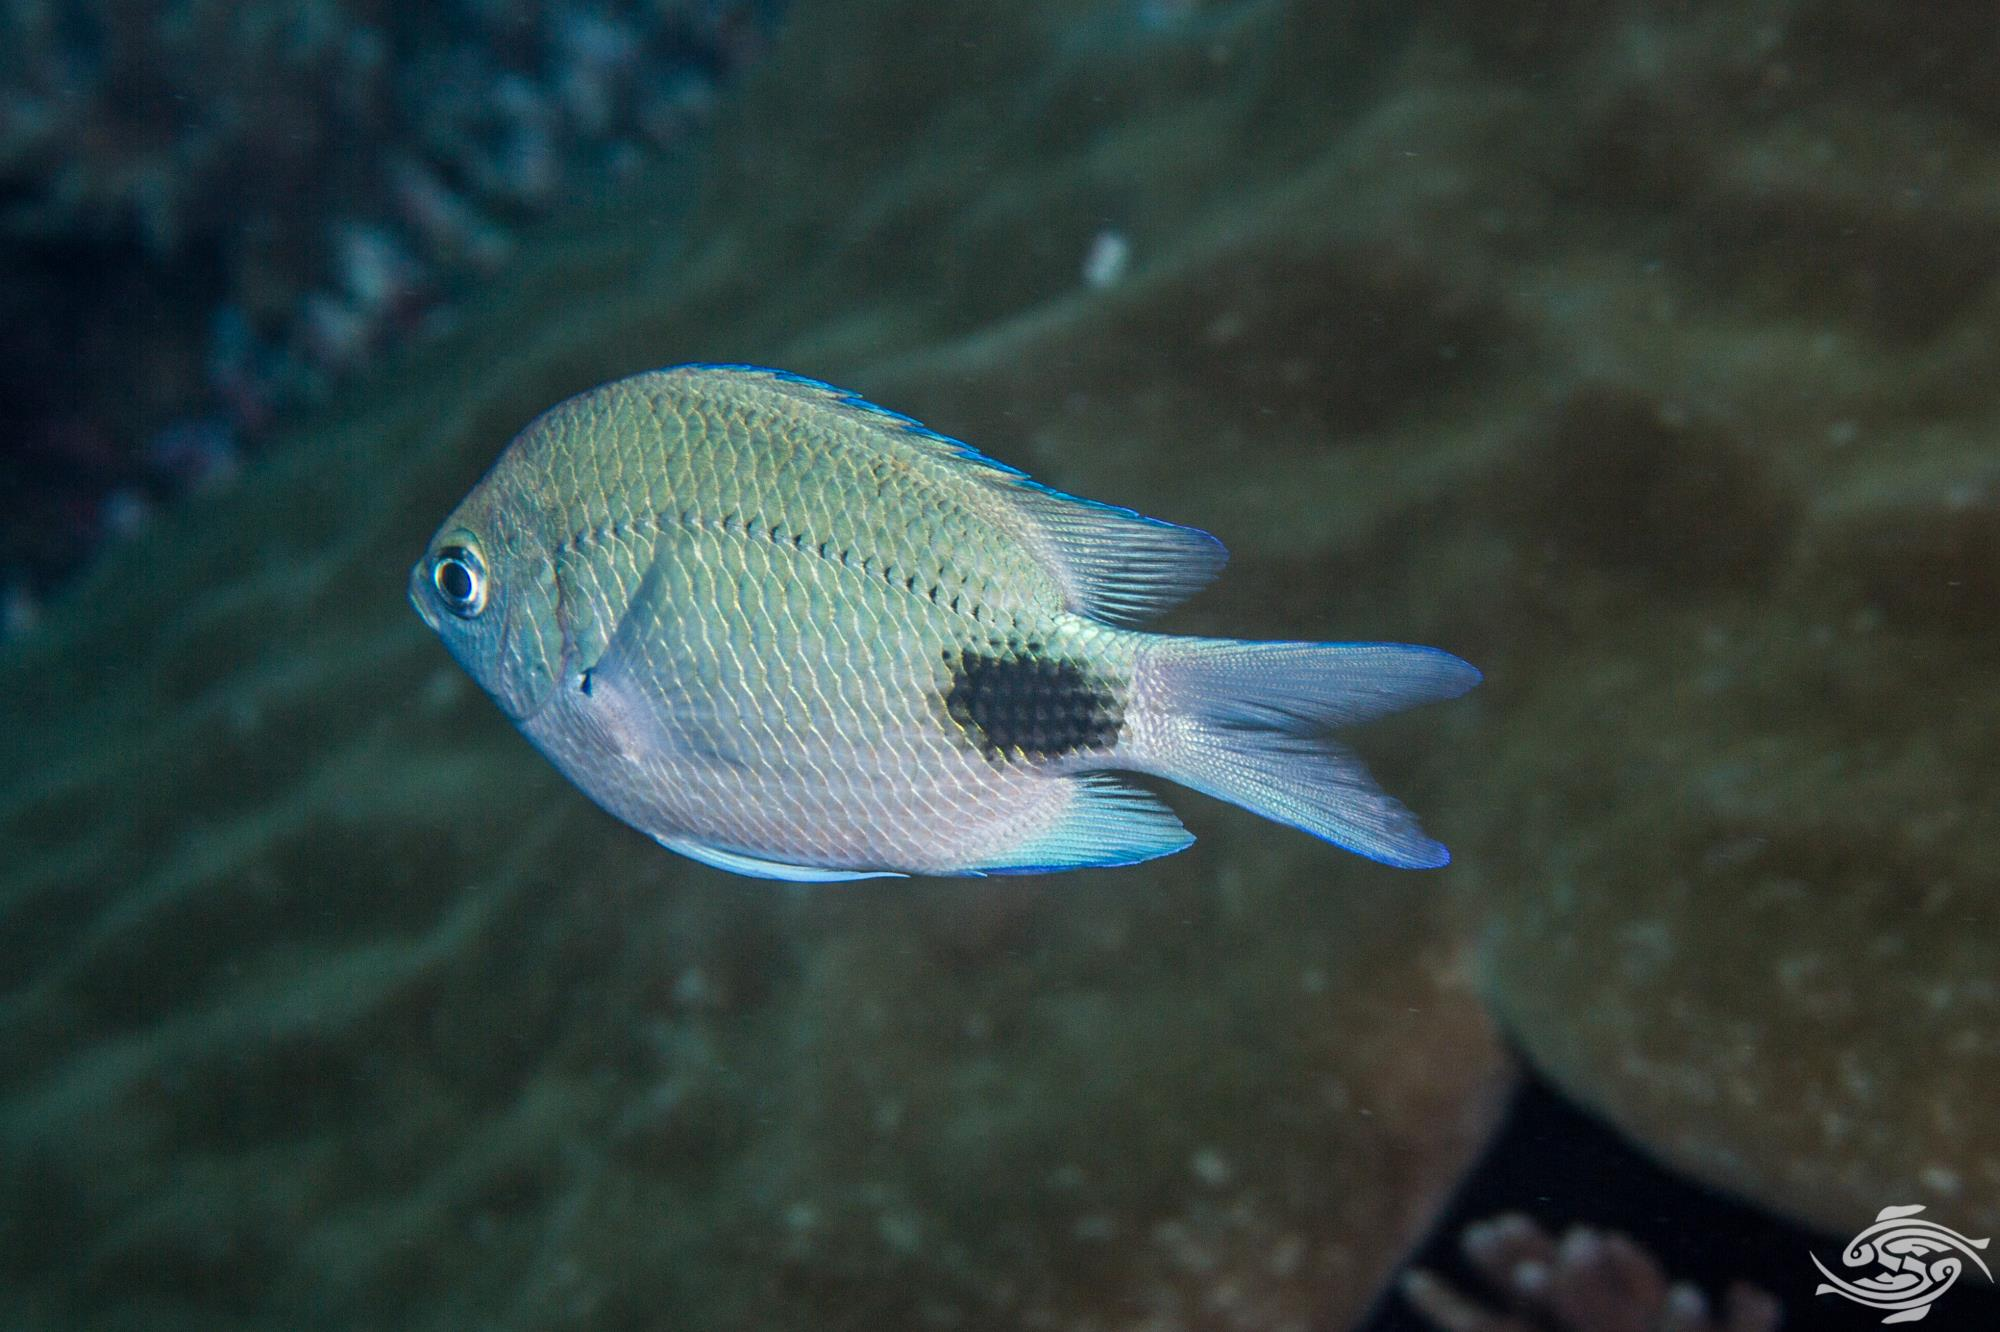 False-eye Damselfish Abudefduf sparoides, also known as the False-eye Sergeant